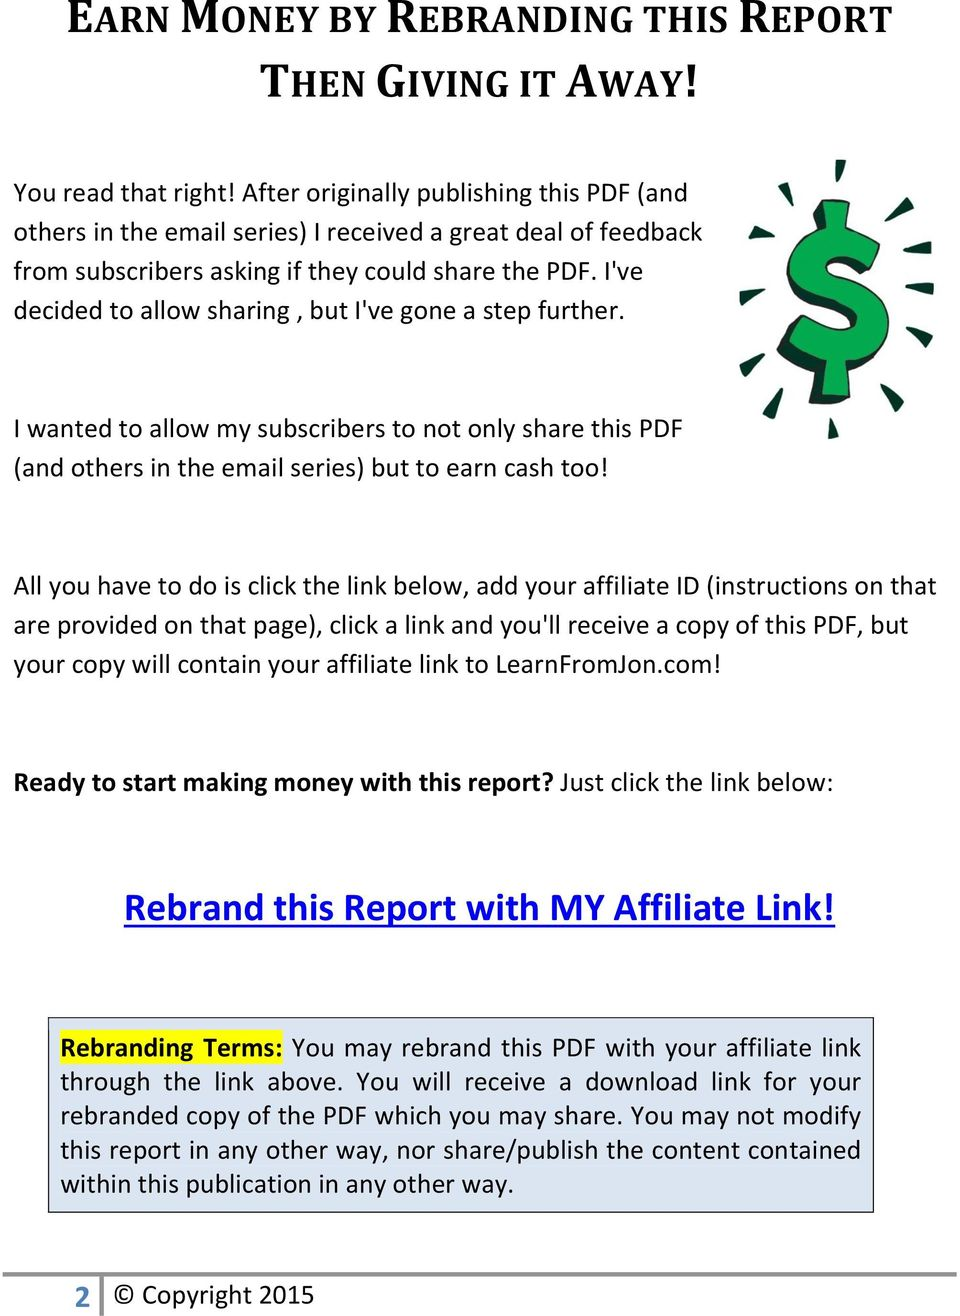 I've decided to allow sharing, but I've gone a step further. I wanted to allow my subscribers to not only share this PDF (and others in the email series) but to earn cash too!